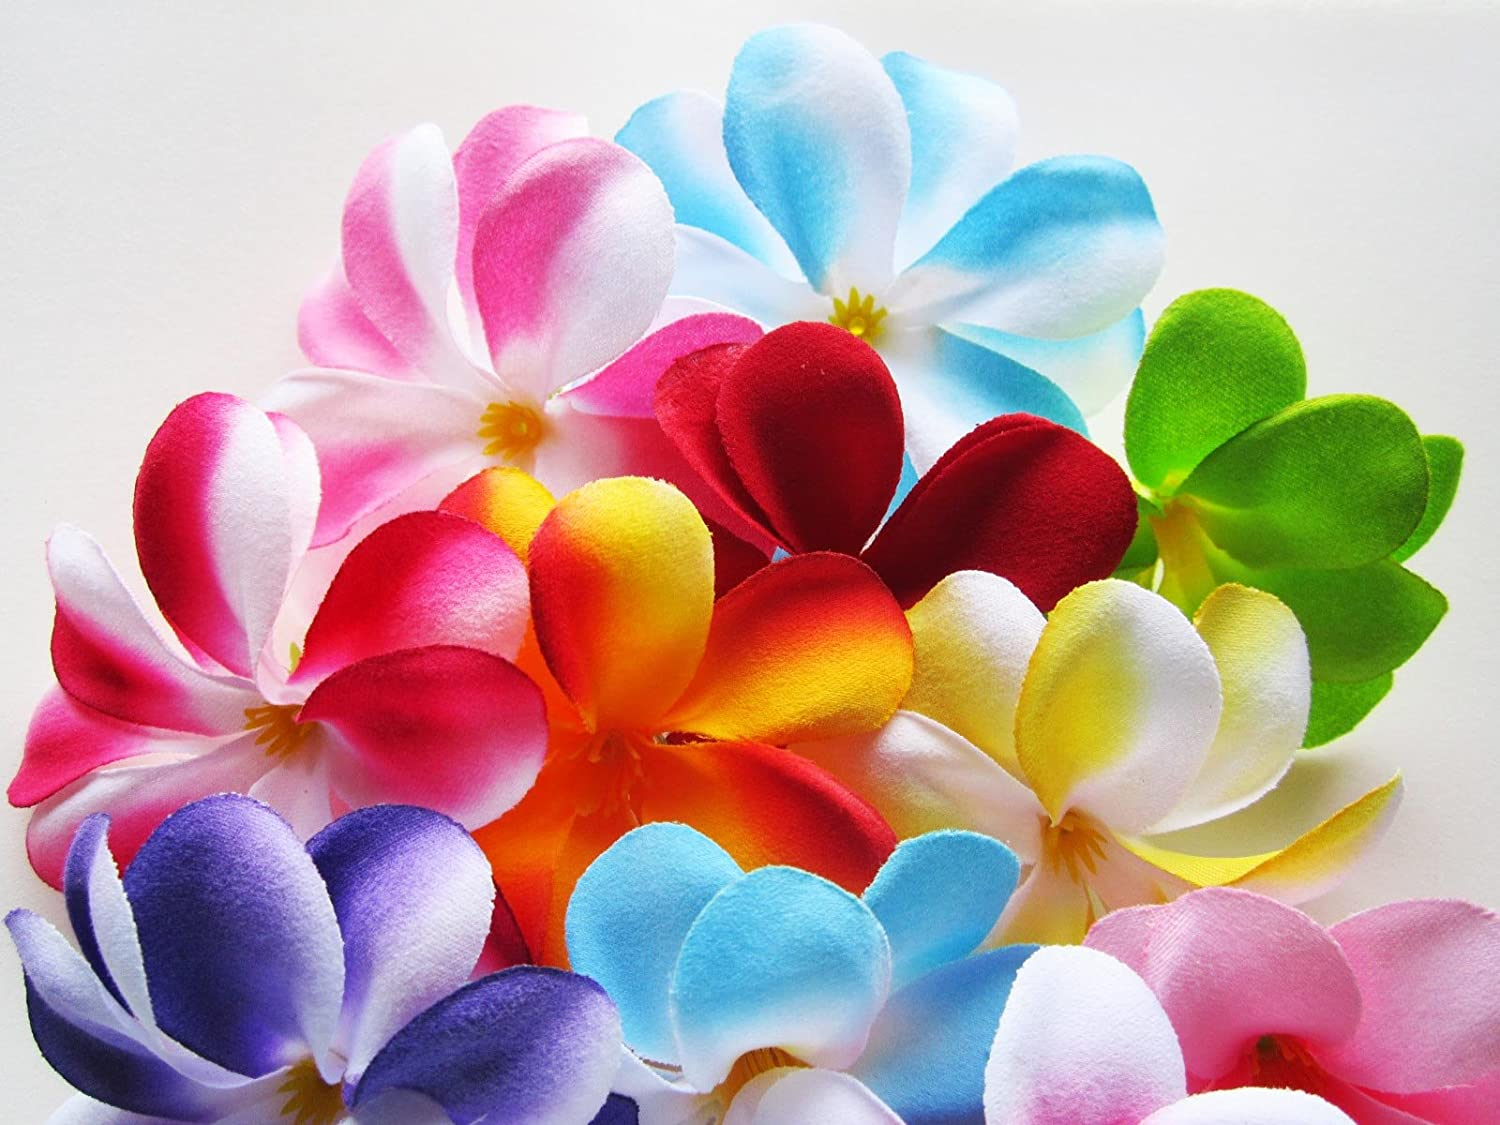 Amazon 100 assorted hawaiian plumeria frangipani silk flower amazon 100 assorted hawaiian plumeria frangipani silk flower heads 3 artificial flowers head fabric floral supplies wholesale lot for wedding mightylinksfo